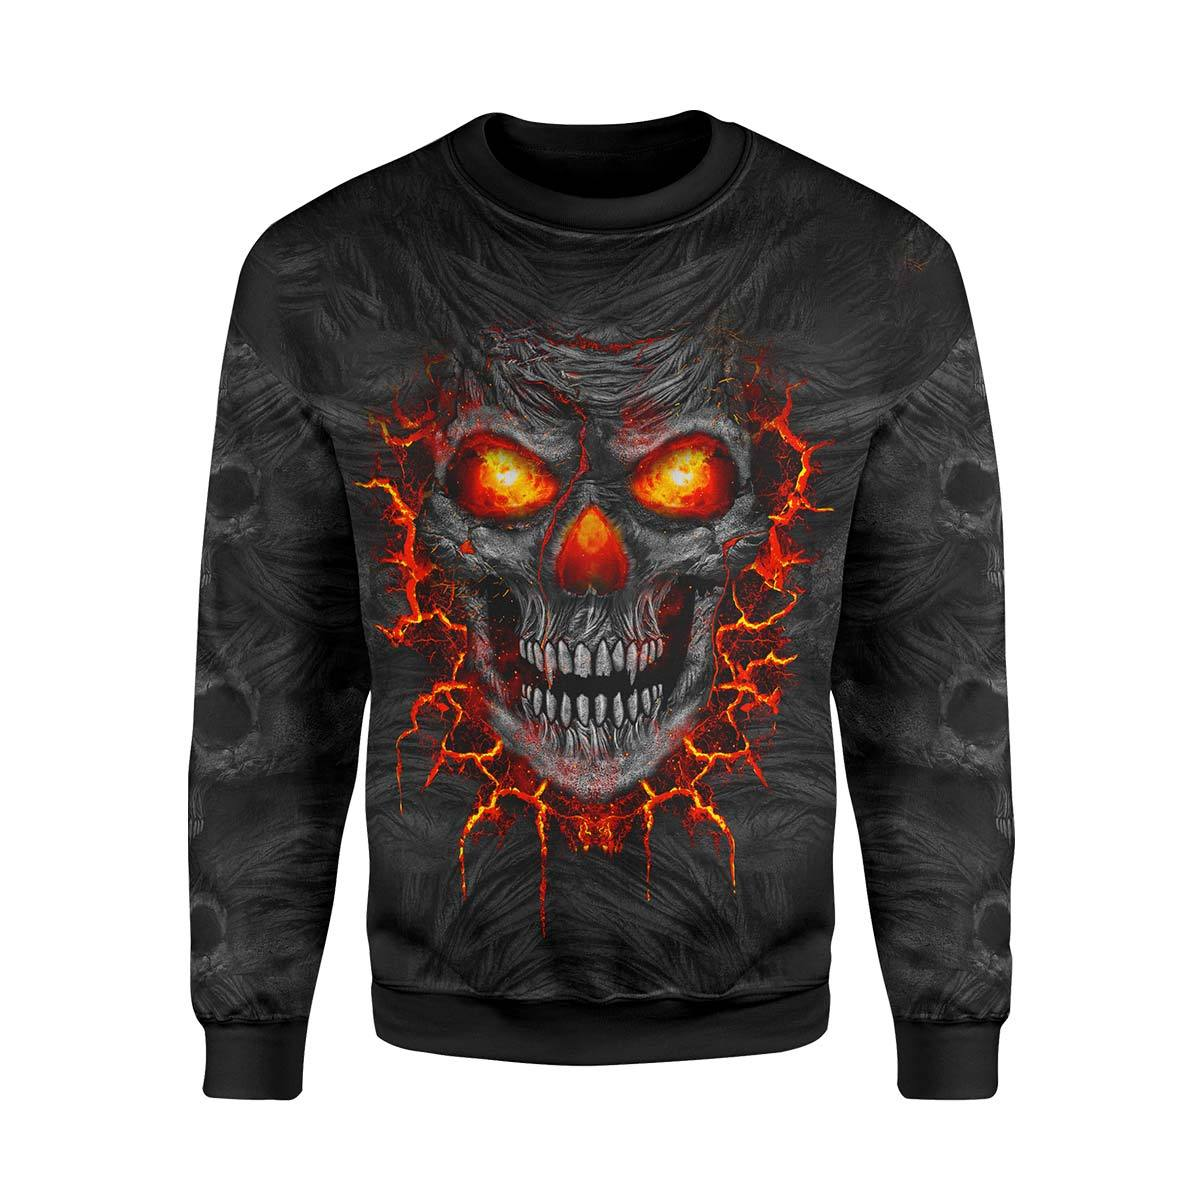 Hell Fire Sweatshirt